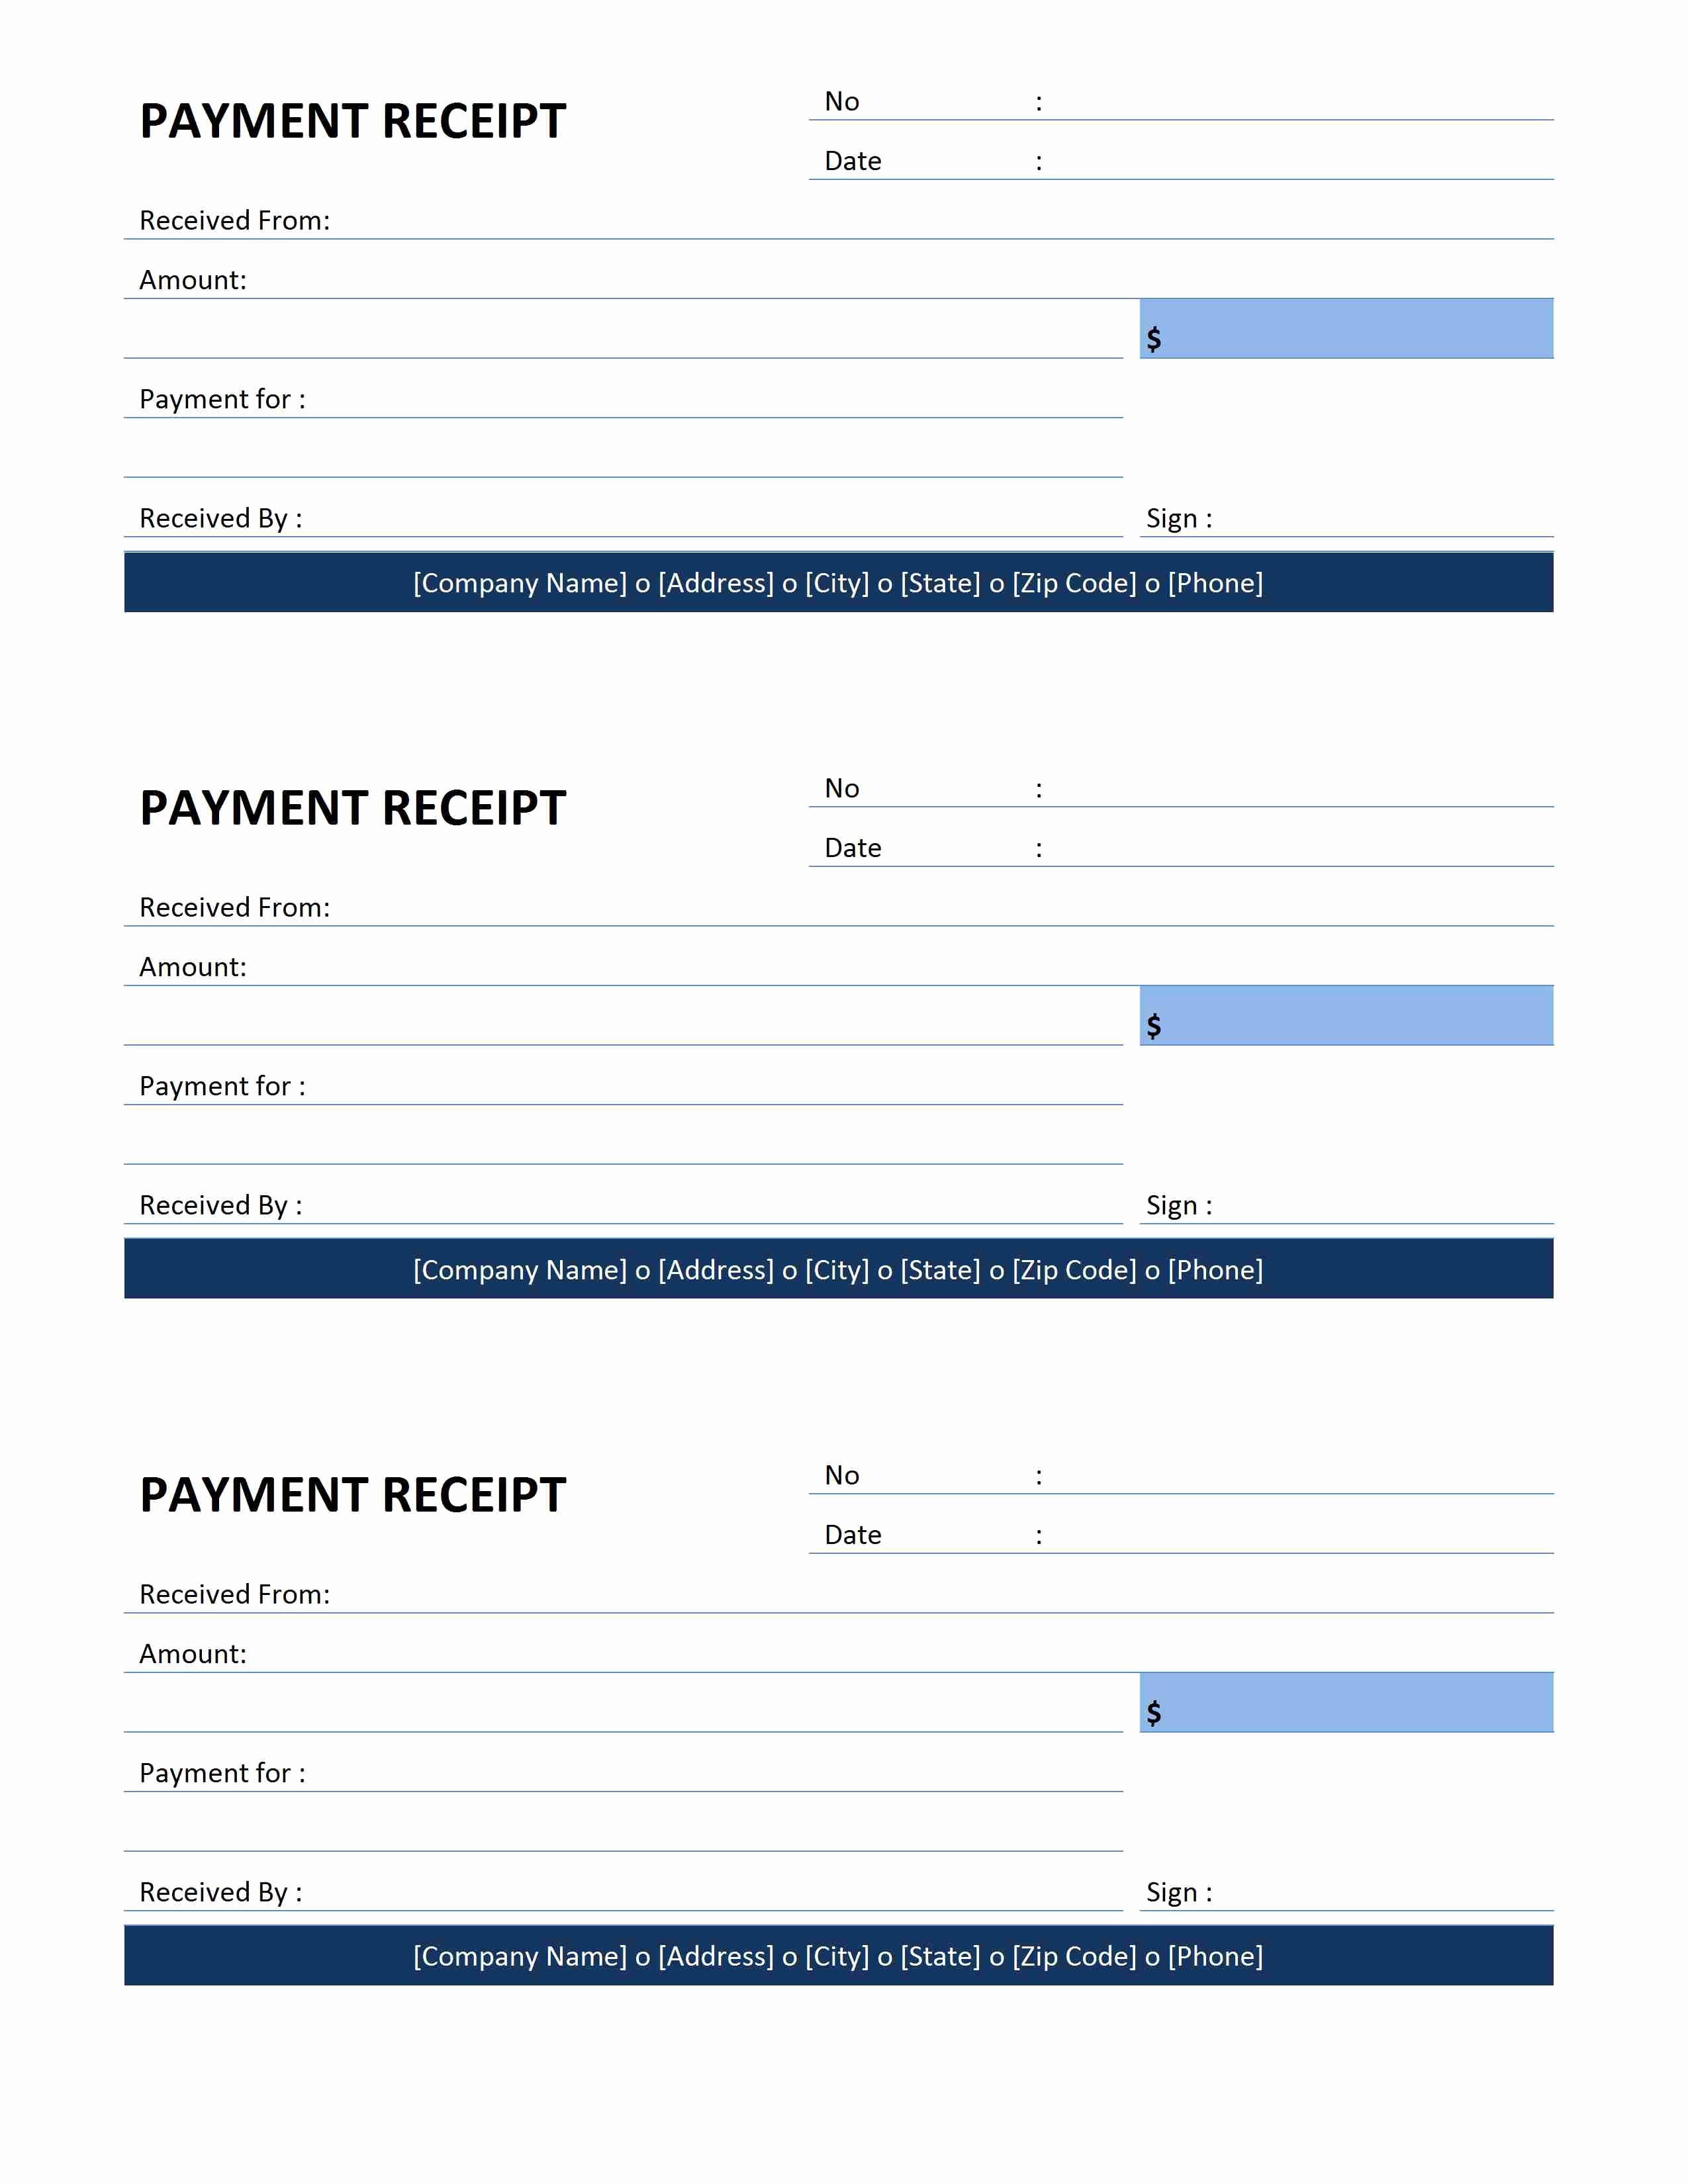 Receipt format for Payment Received Fresh Payment Receipt